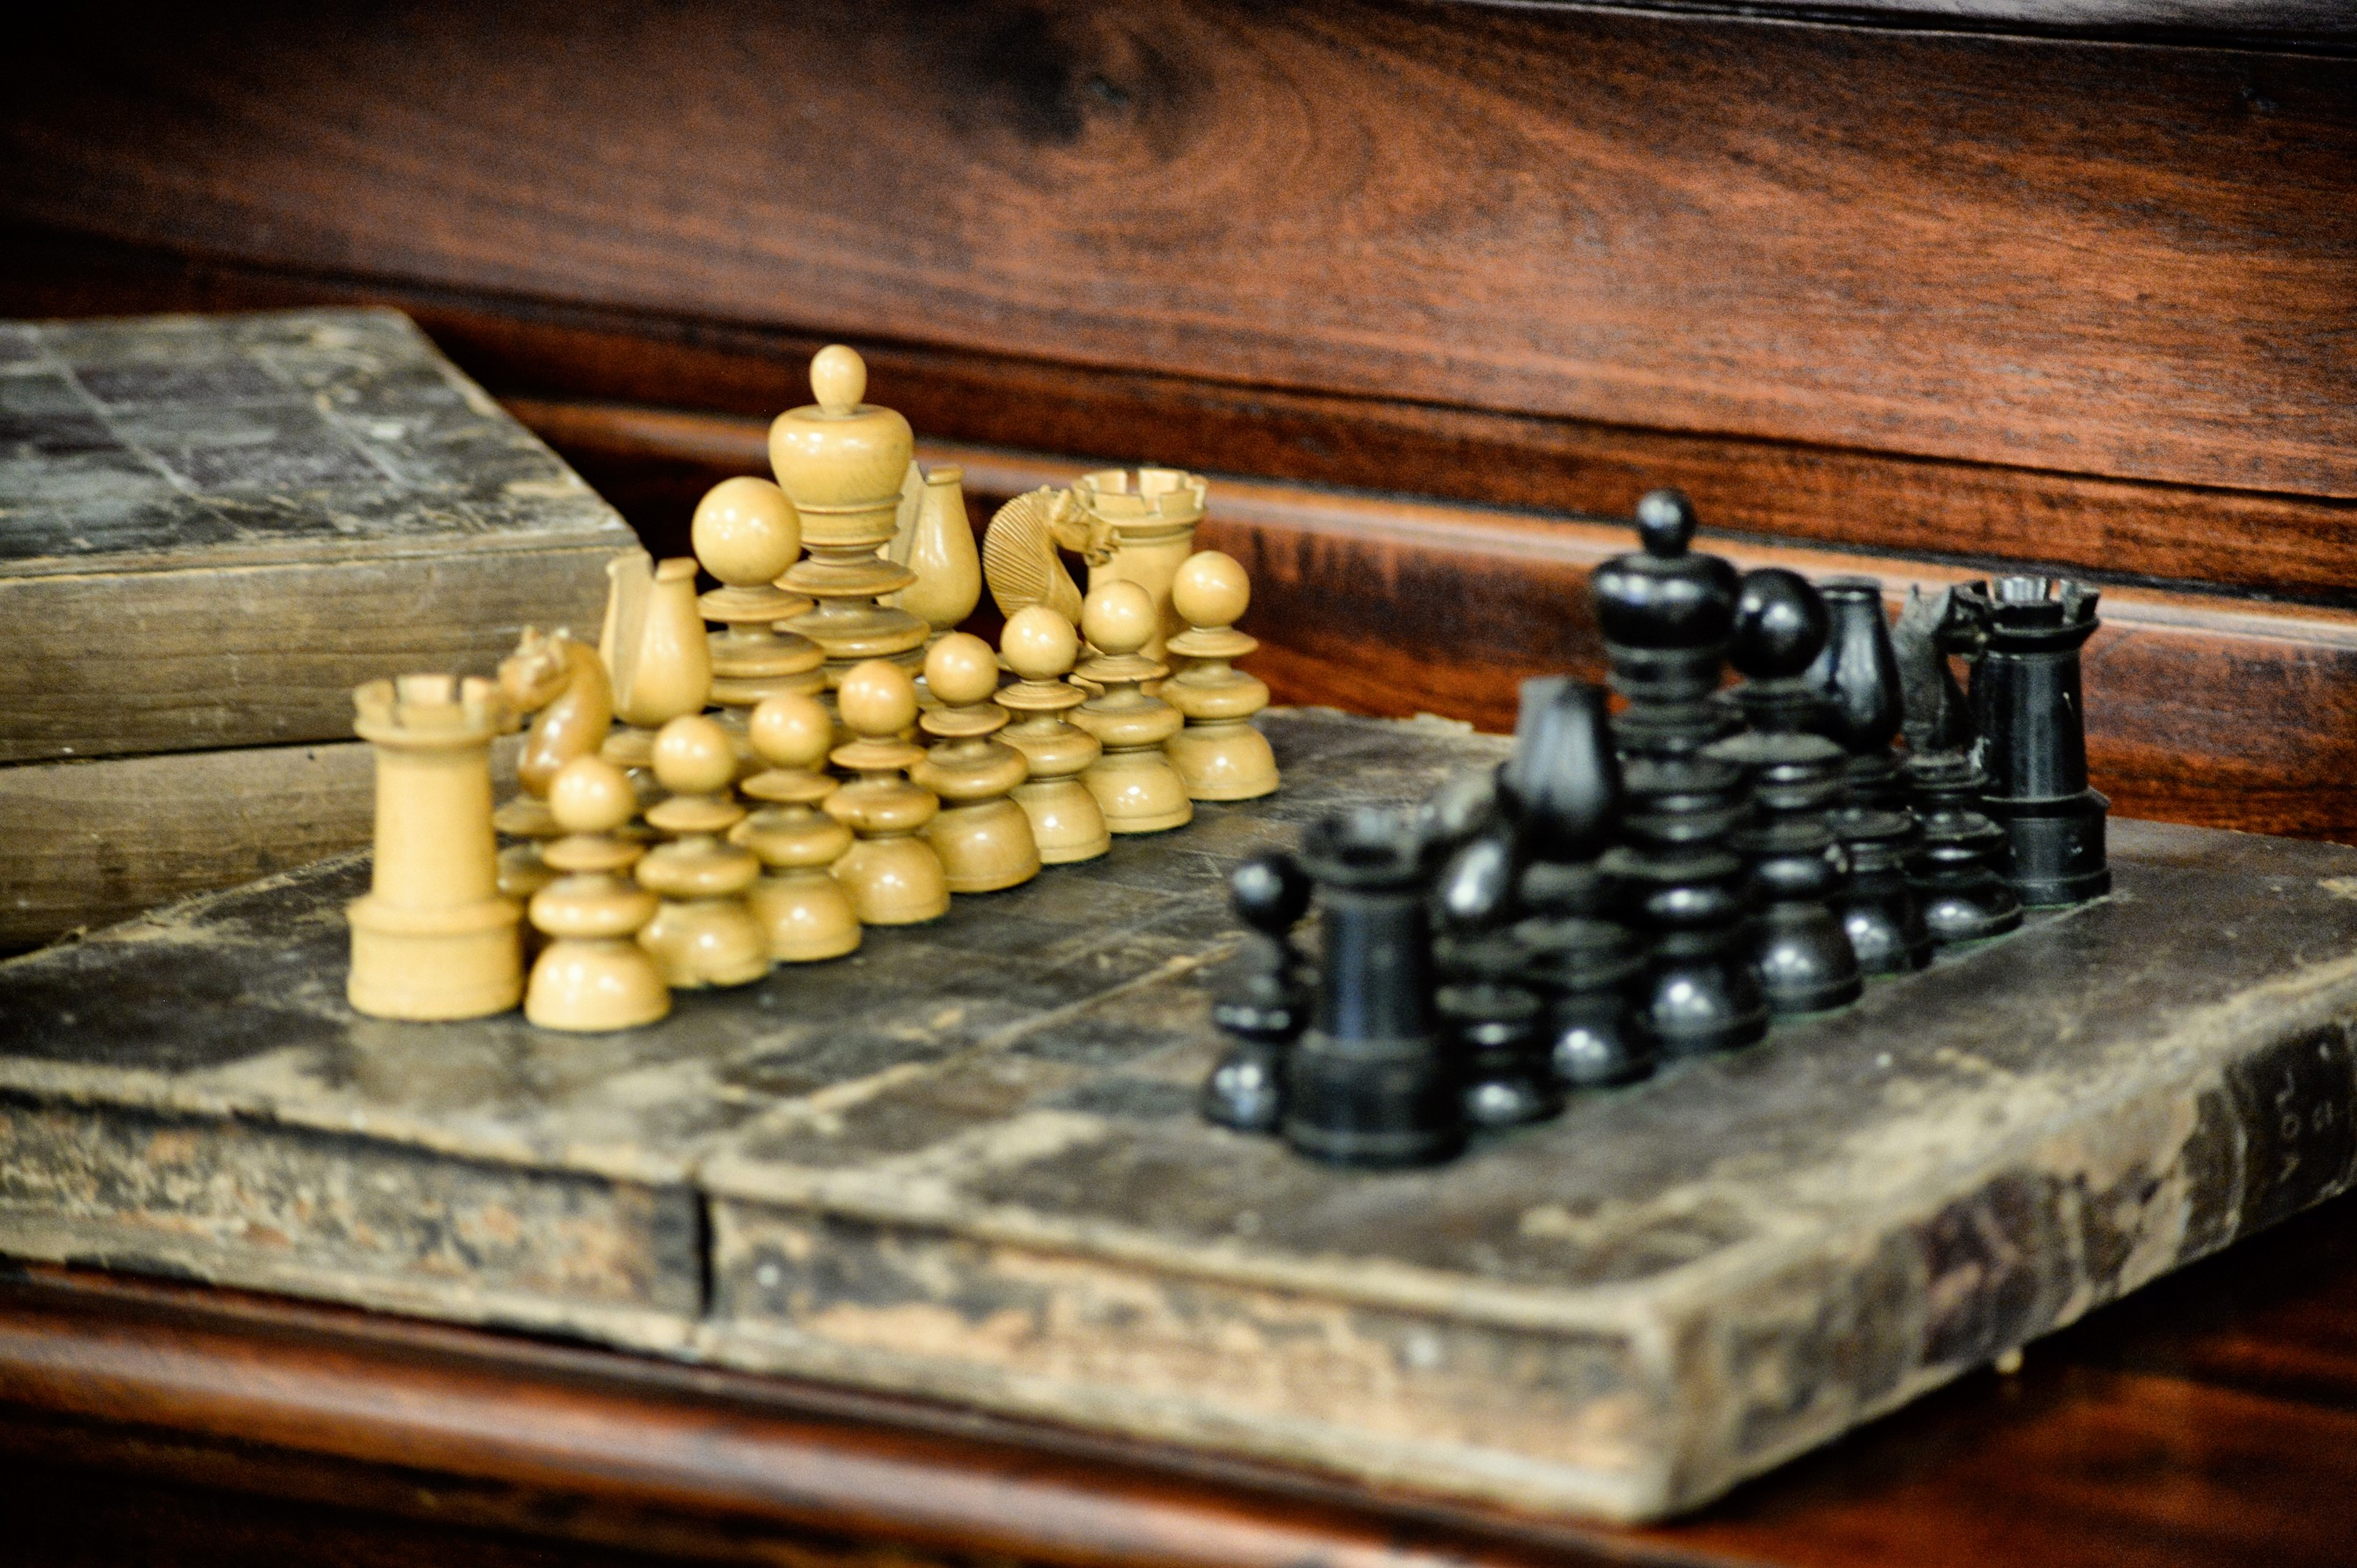 Jaques of London Chess Set demands attention from across the globe